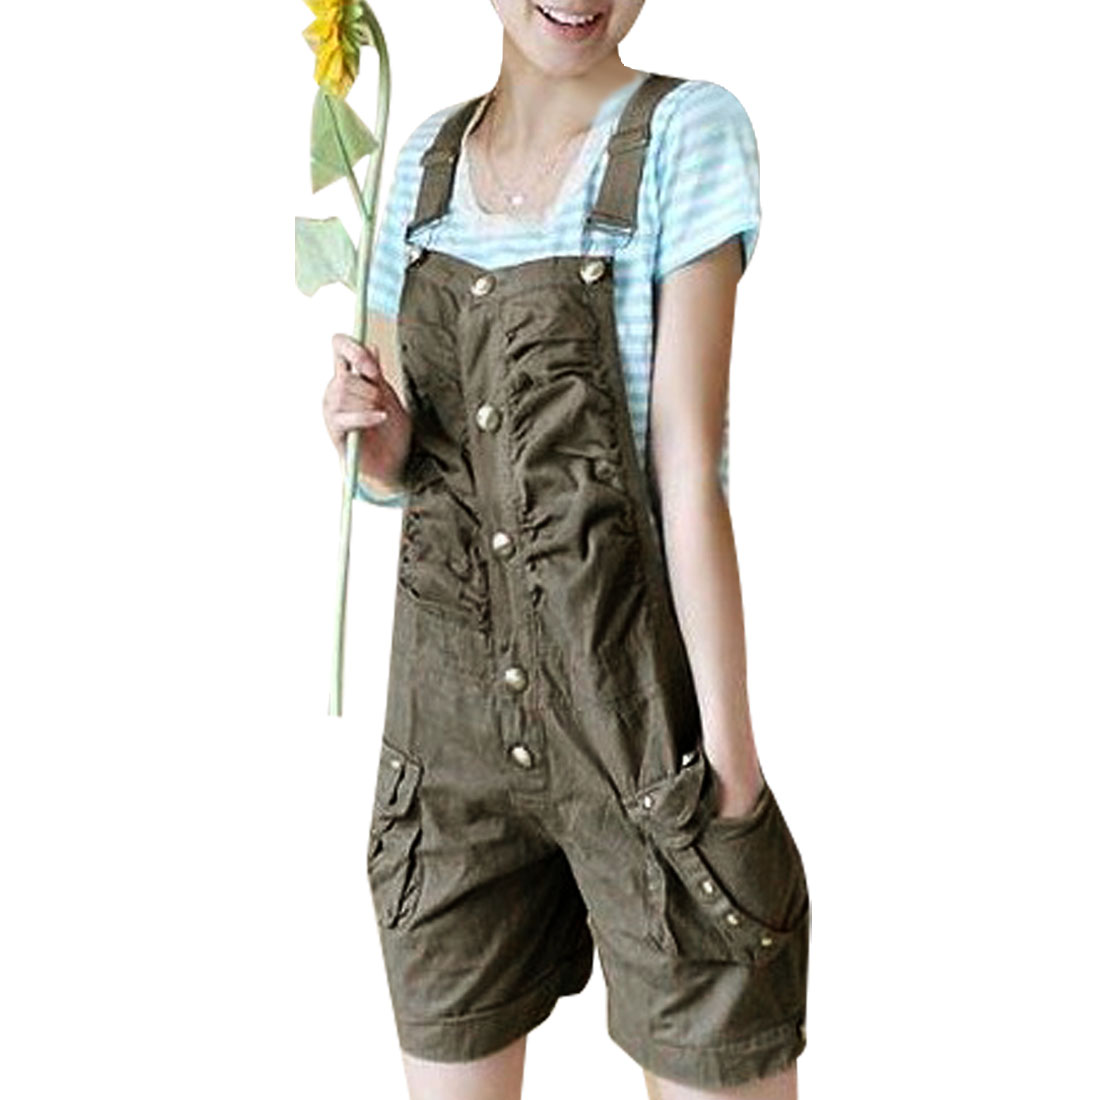 Summer Side Button Closure Adjustable Suspender Pants Khaki XS for Woman